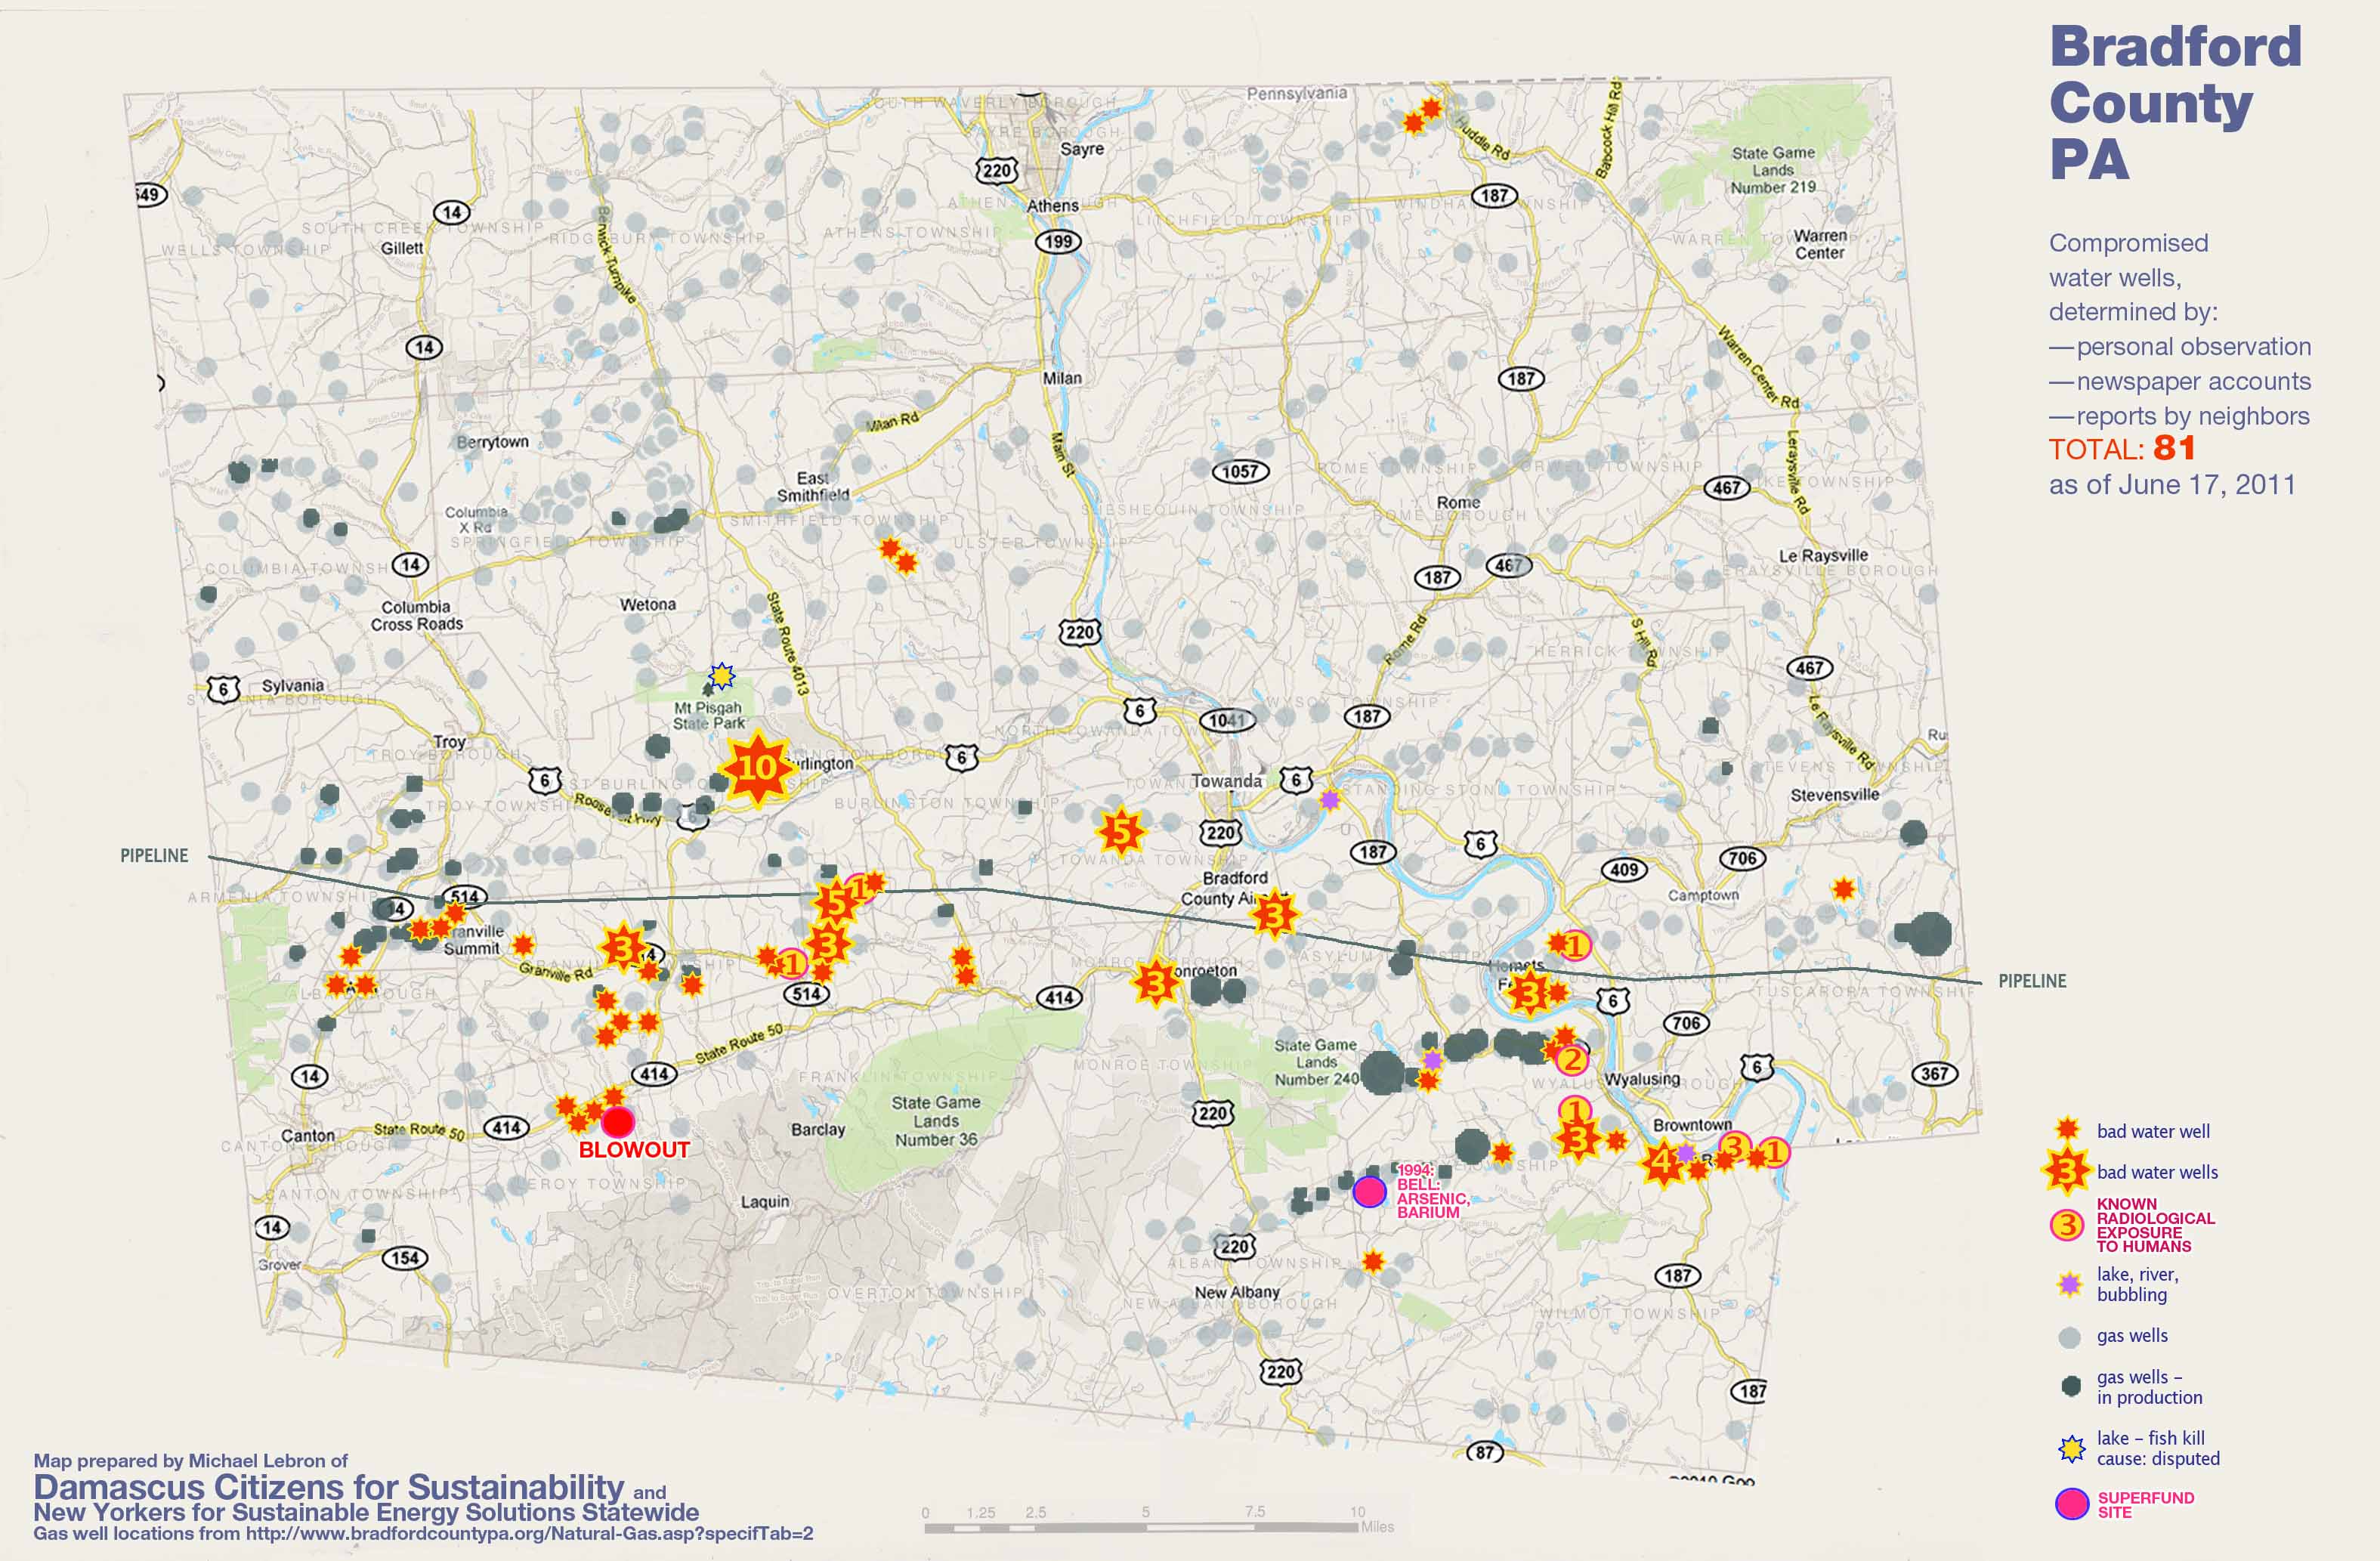 Bradford Co Pa Map Of Compromised Water Gas Wells Gdacc